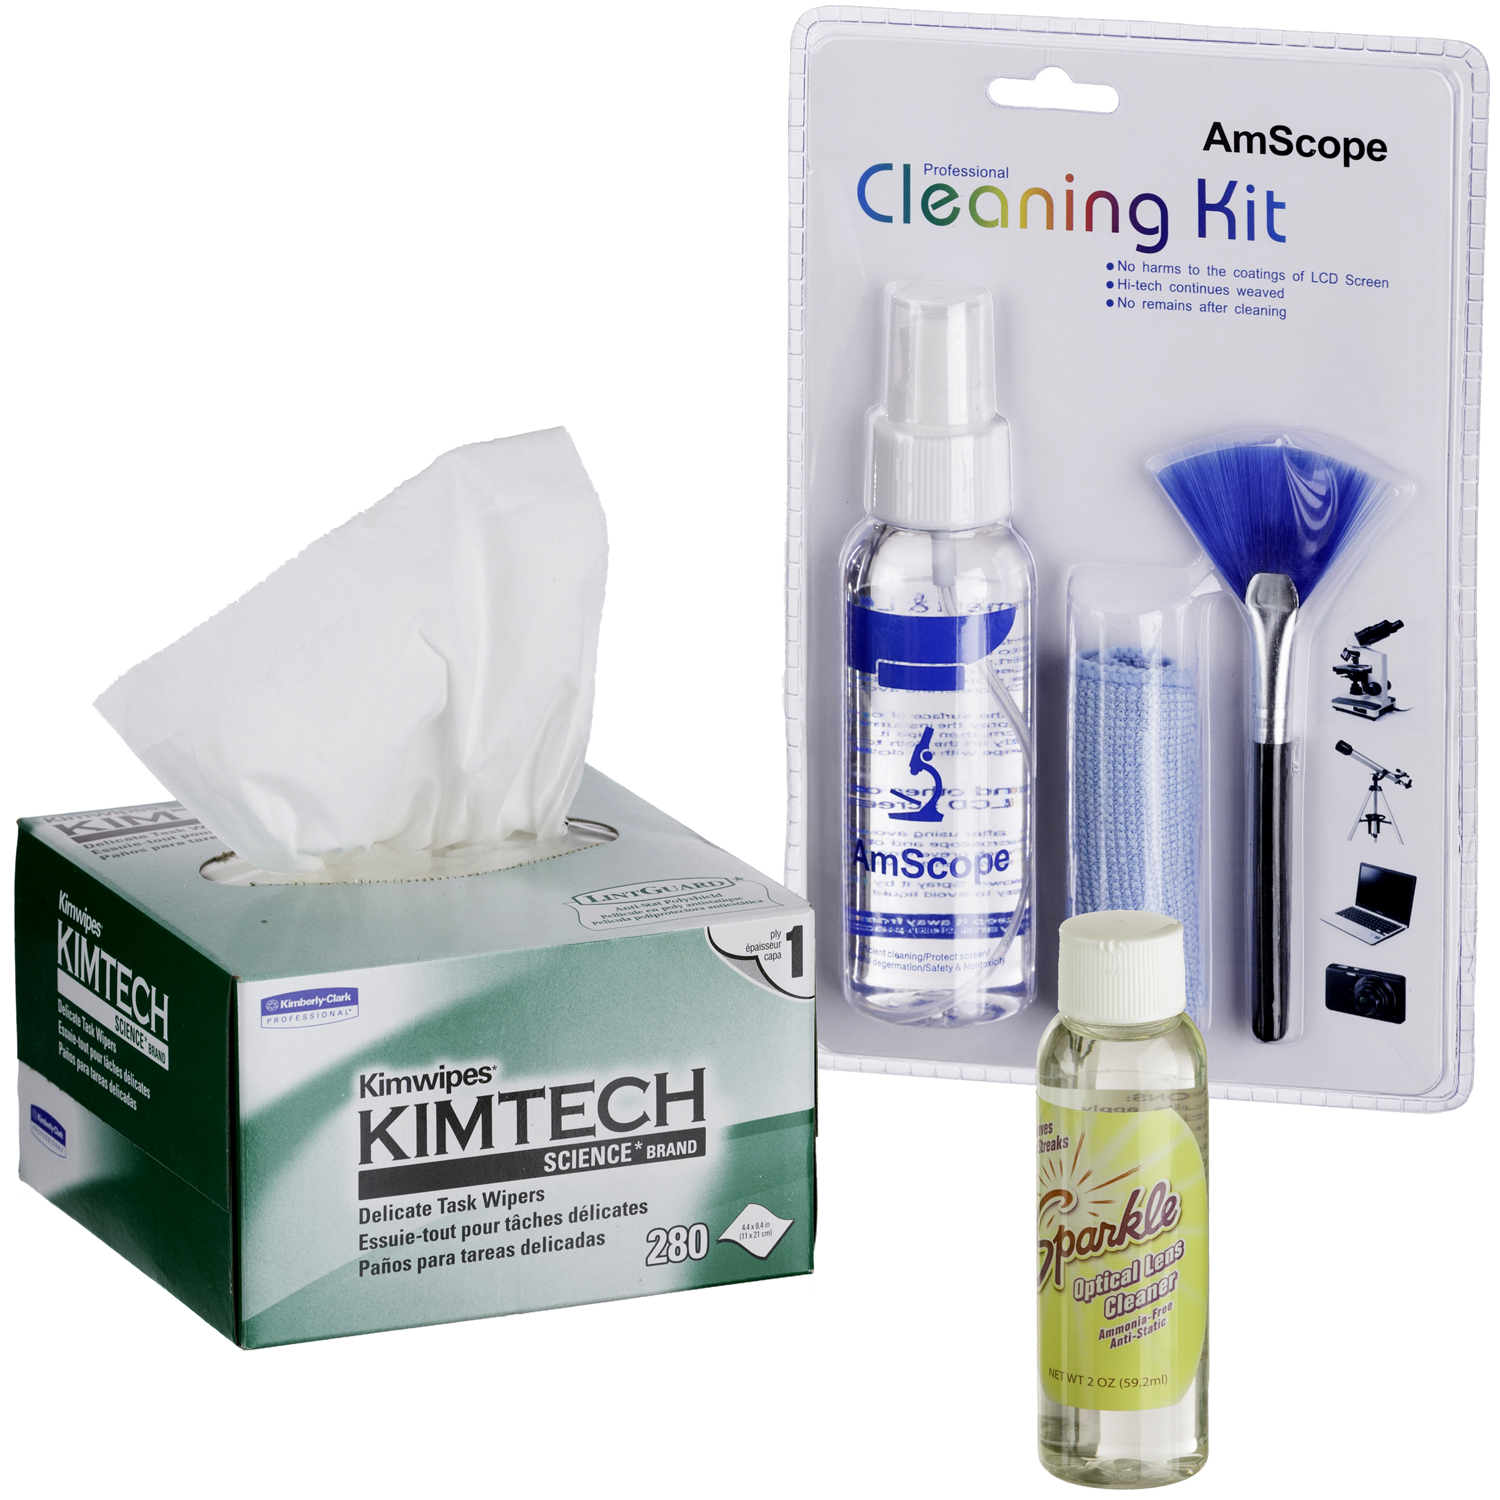 AmScope Microscope and Camera Cleaning Kit  for Lenses, Body and TV or Computer Screens